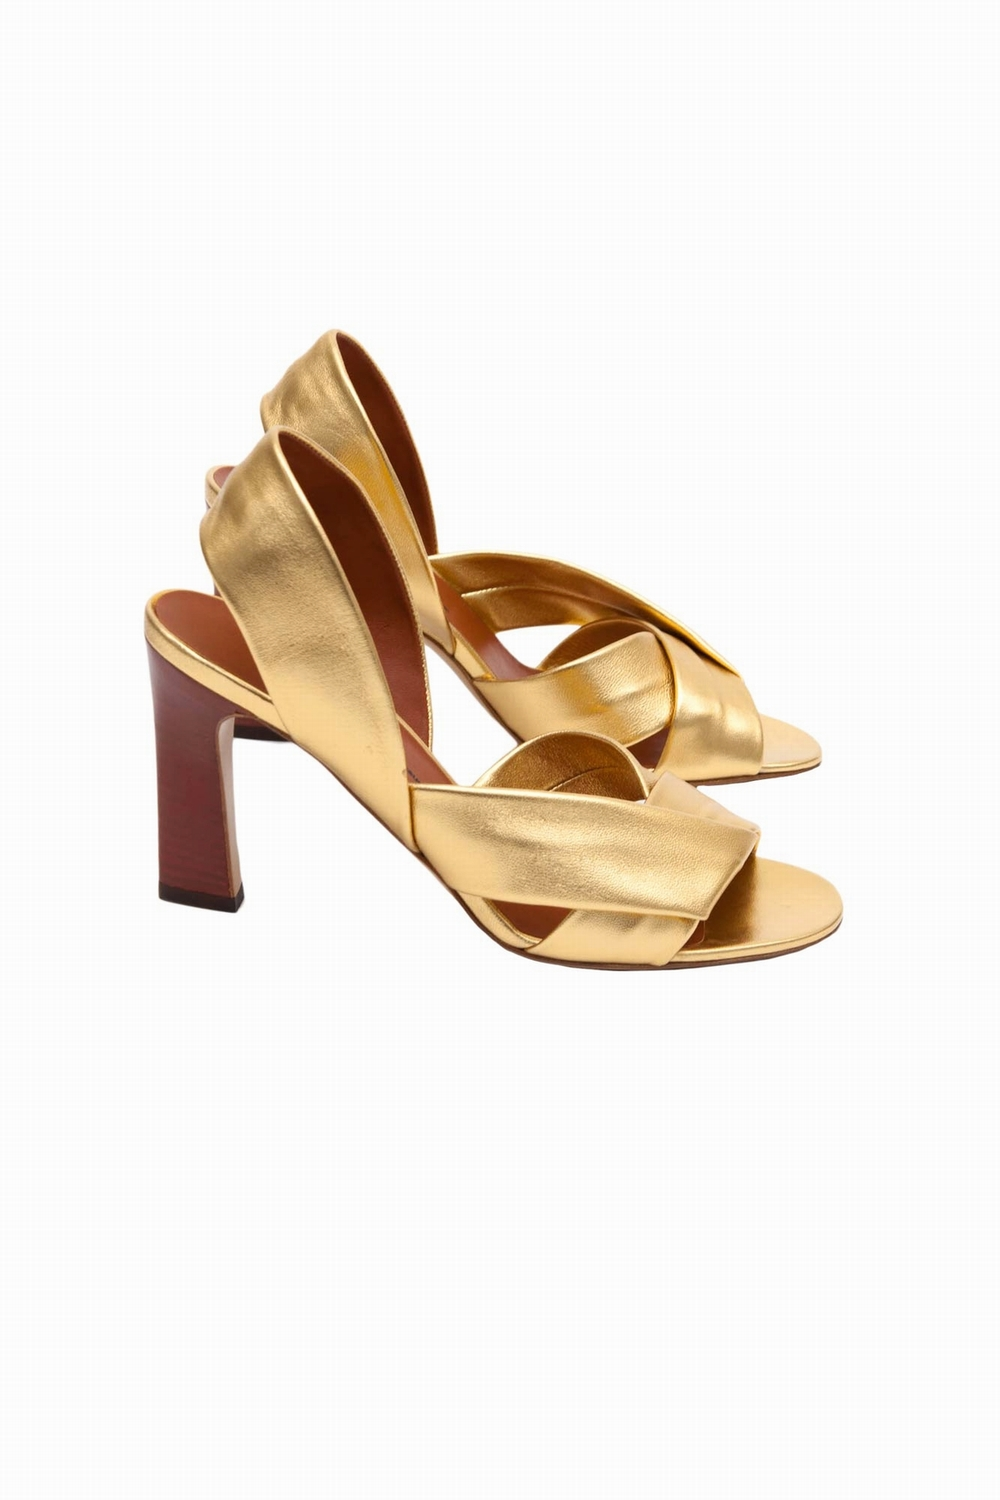 MICHEL VIVIEN Gilda sandals